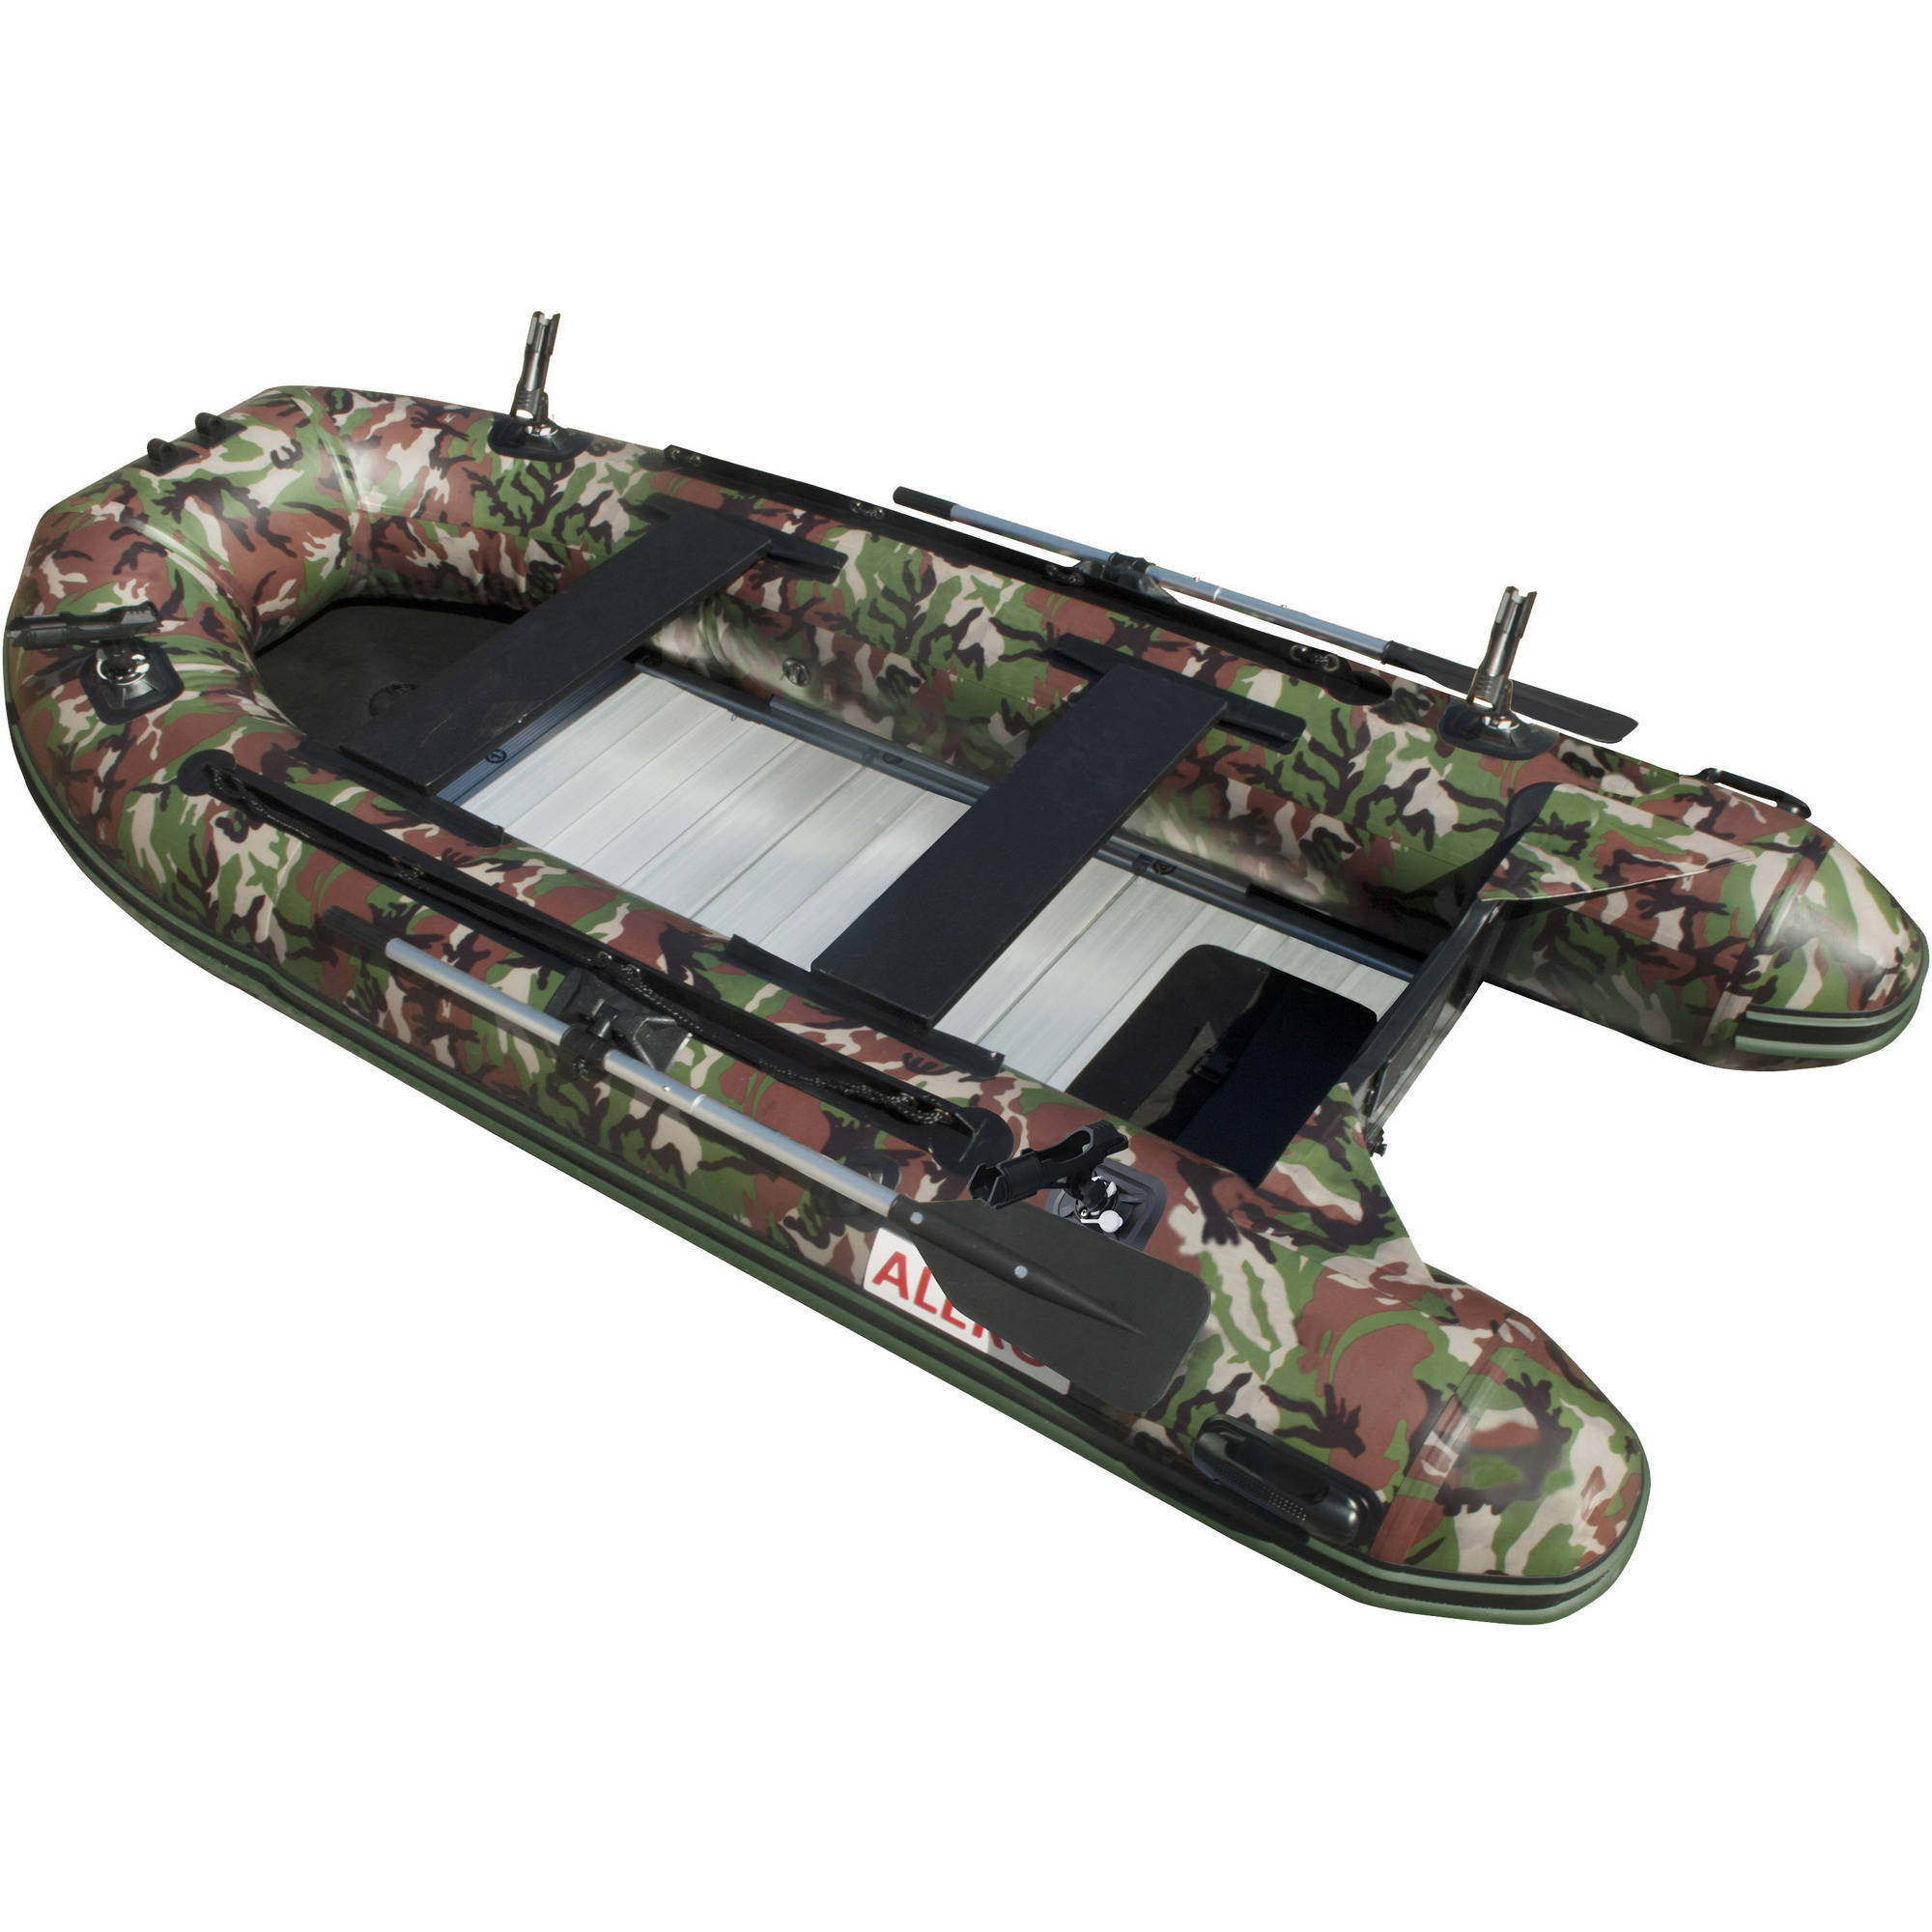 ALEKO PRO Fishing Inflatable Boat with Aluminum Floor - Front Board Holders - 12.5 ft - Camouflage Style